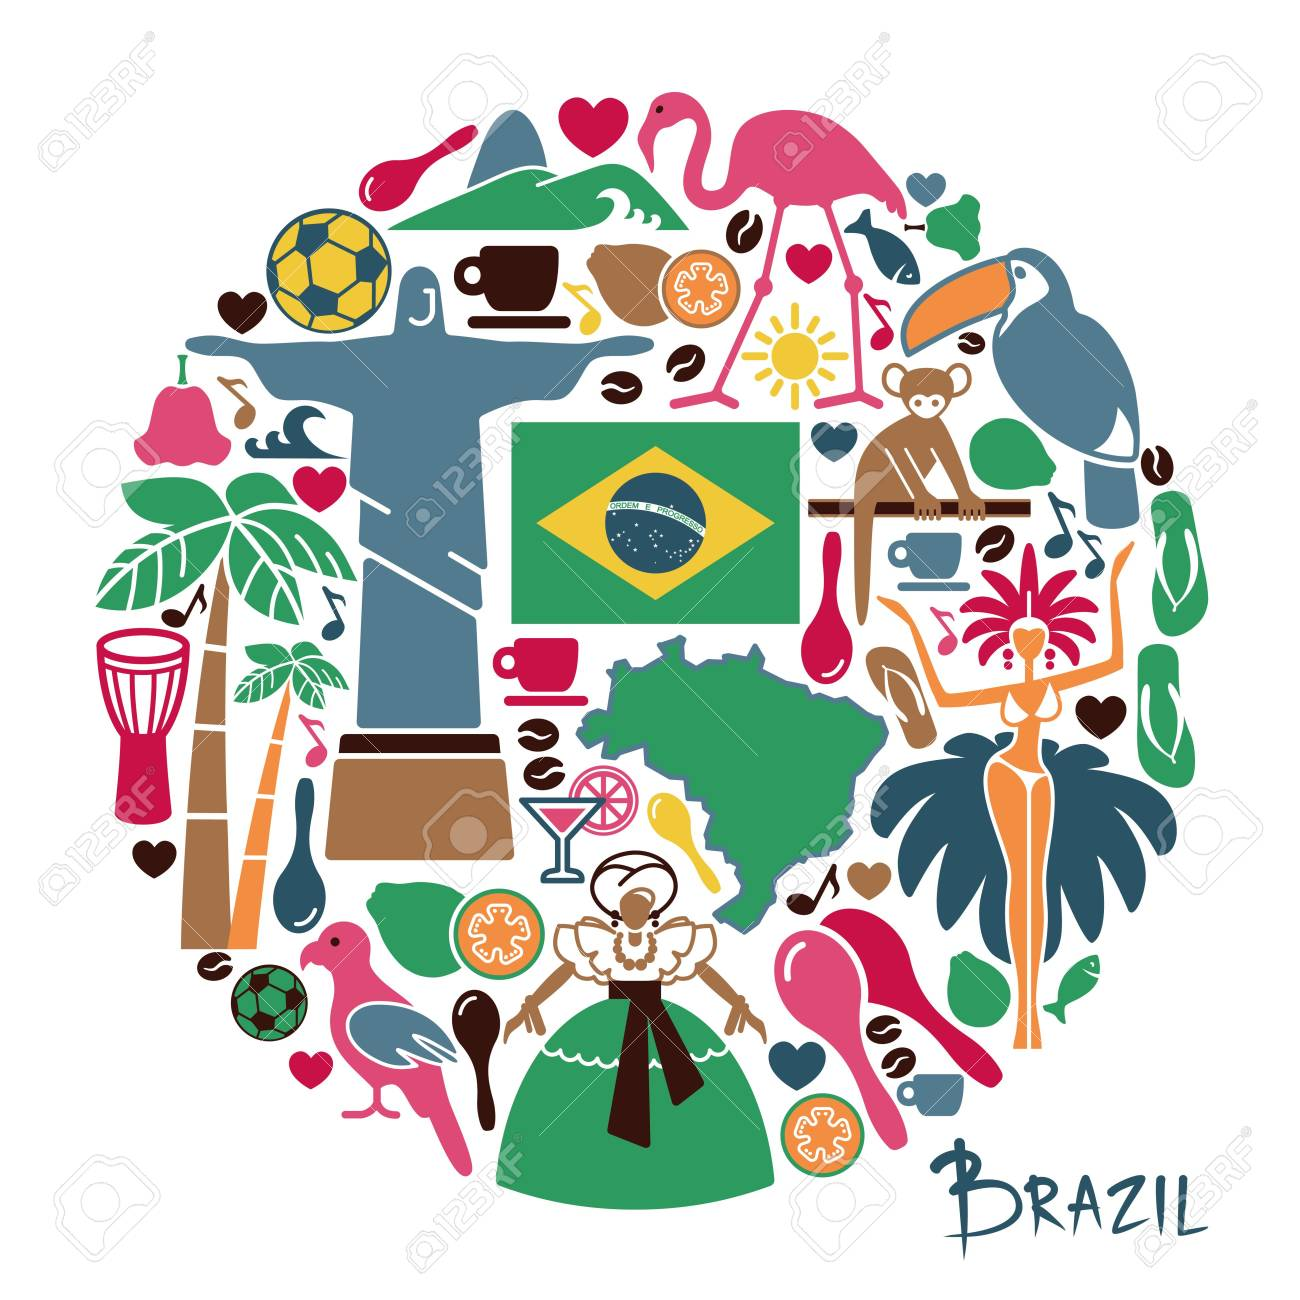 Traditional symbols of culture and the nature of Brazil.